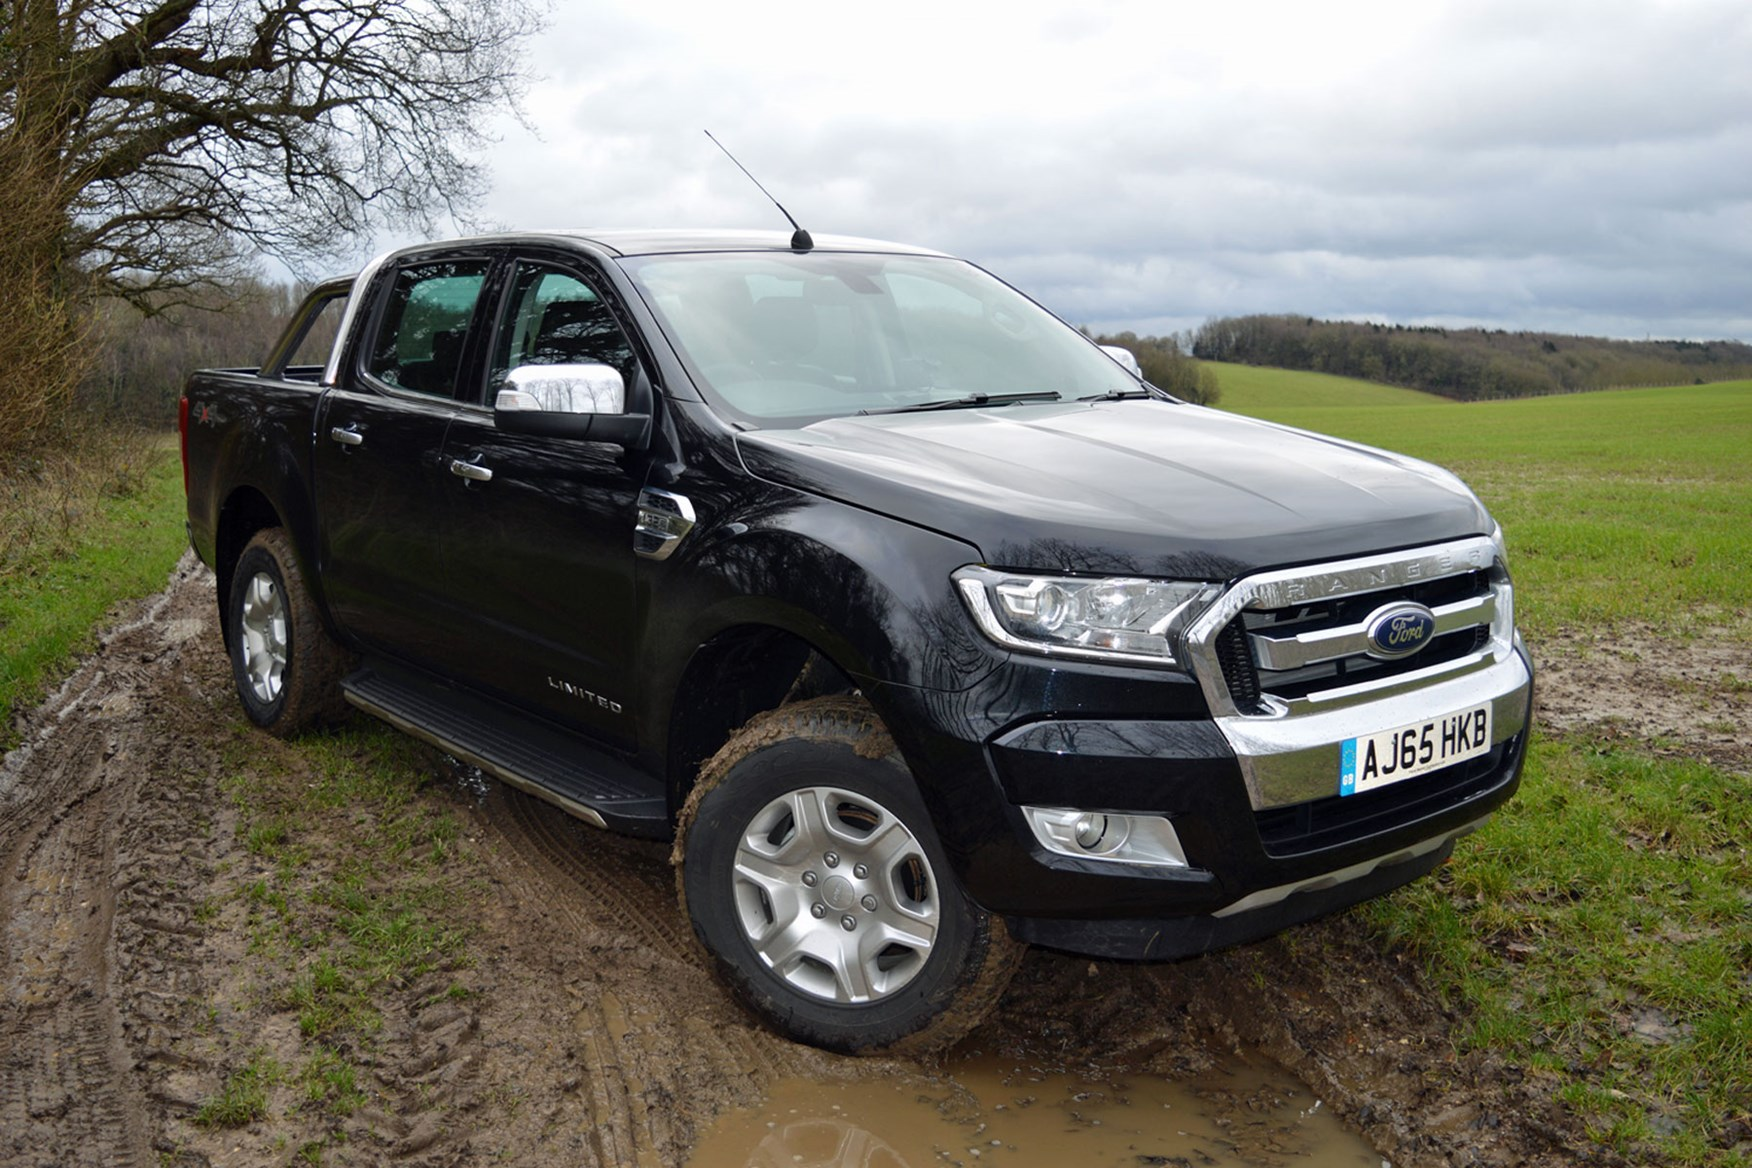 Ford Ranger Limited 3.2 Euro 5 review - front view, black, on mud